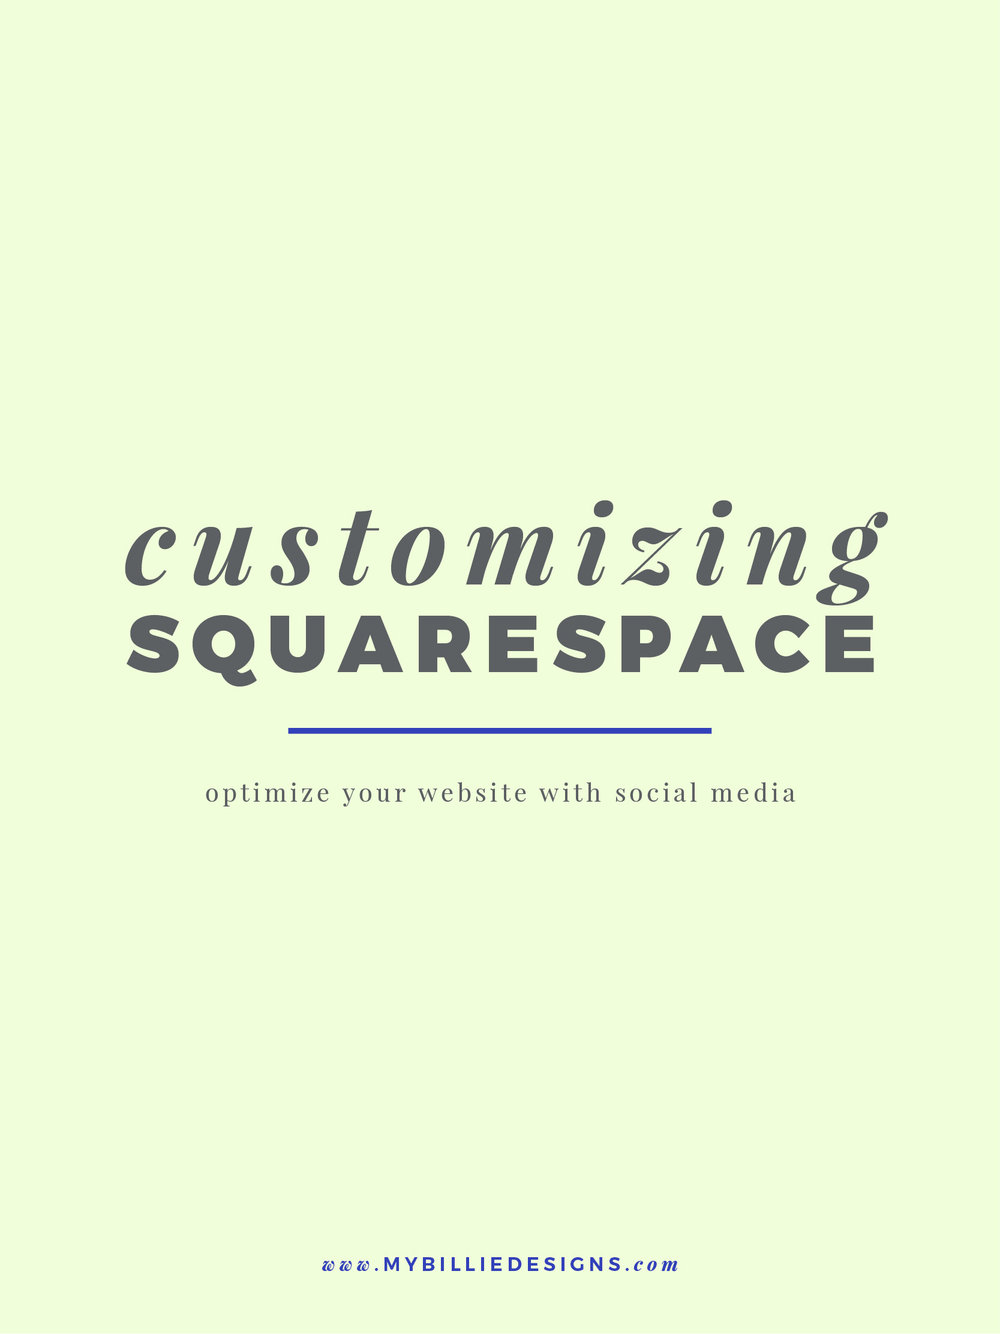 If you're selling a service or product, you probably already know how much potential there is to make more sales if you're getting in front of people on social media, so I especially love how easy Squarespace makes it to 1) lead people to your social media accounts and 2) make it easy for people to share content from your website.